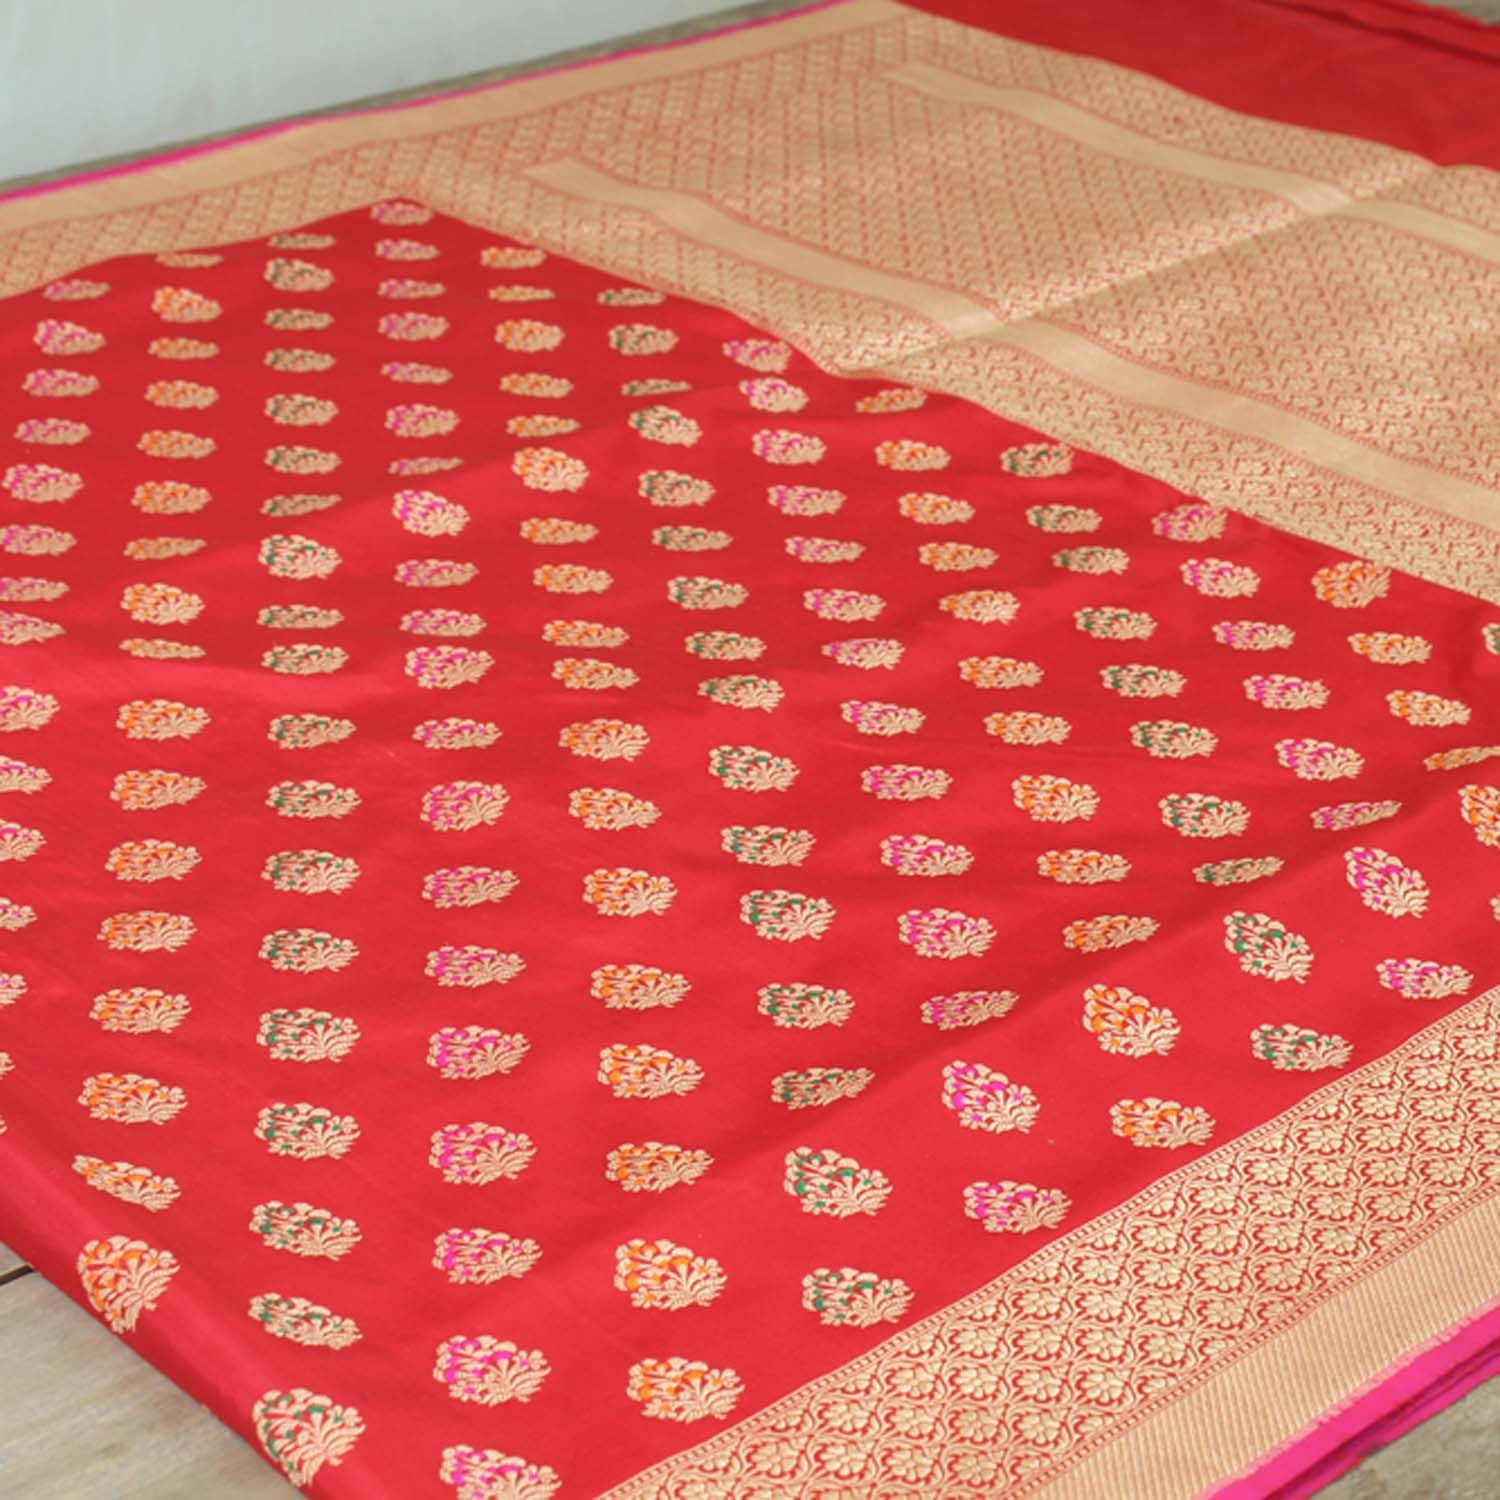 Red Pure Katan Silk Kadwa Banarasi Handloom Saree - Tilfi - 3